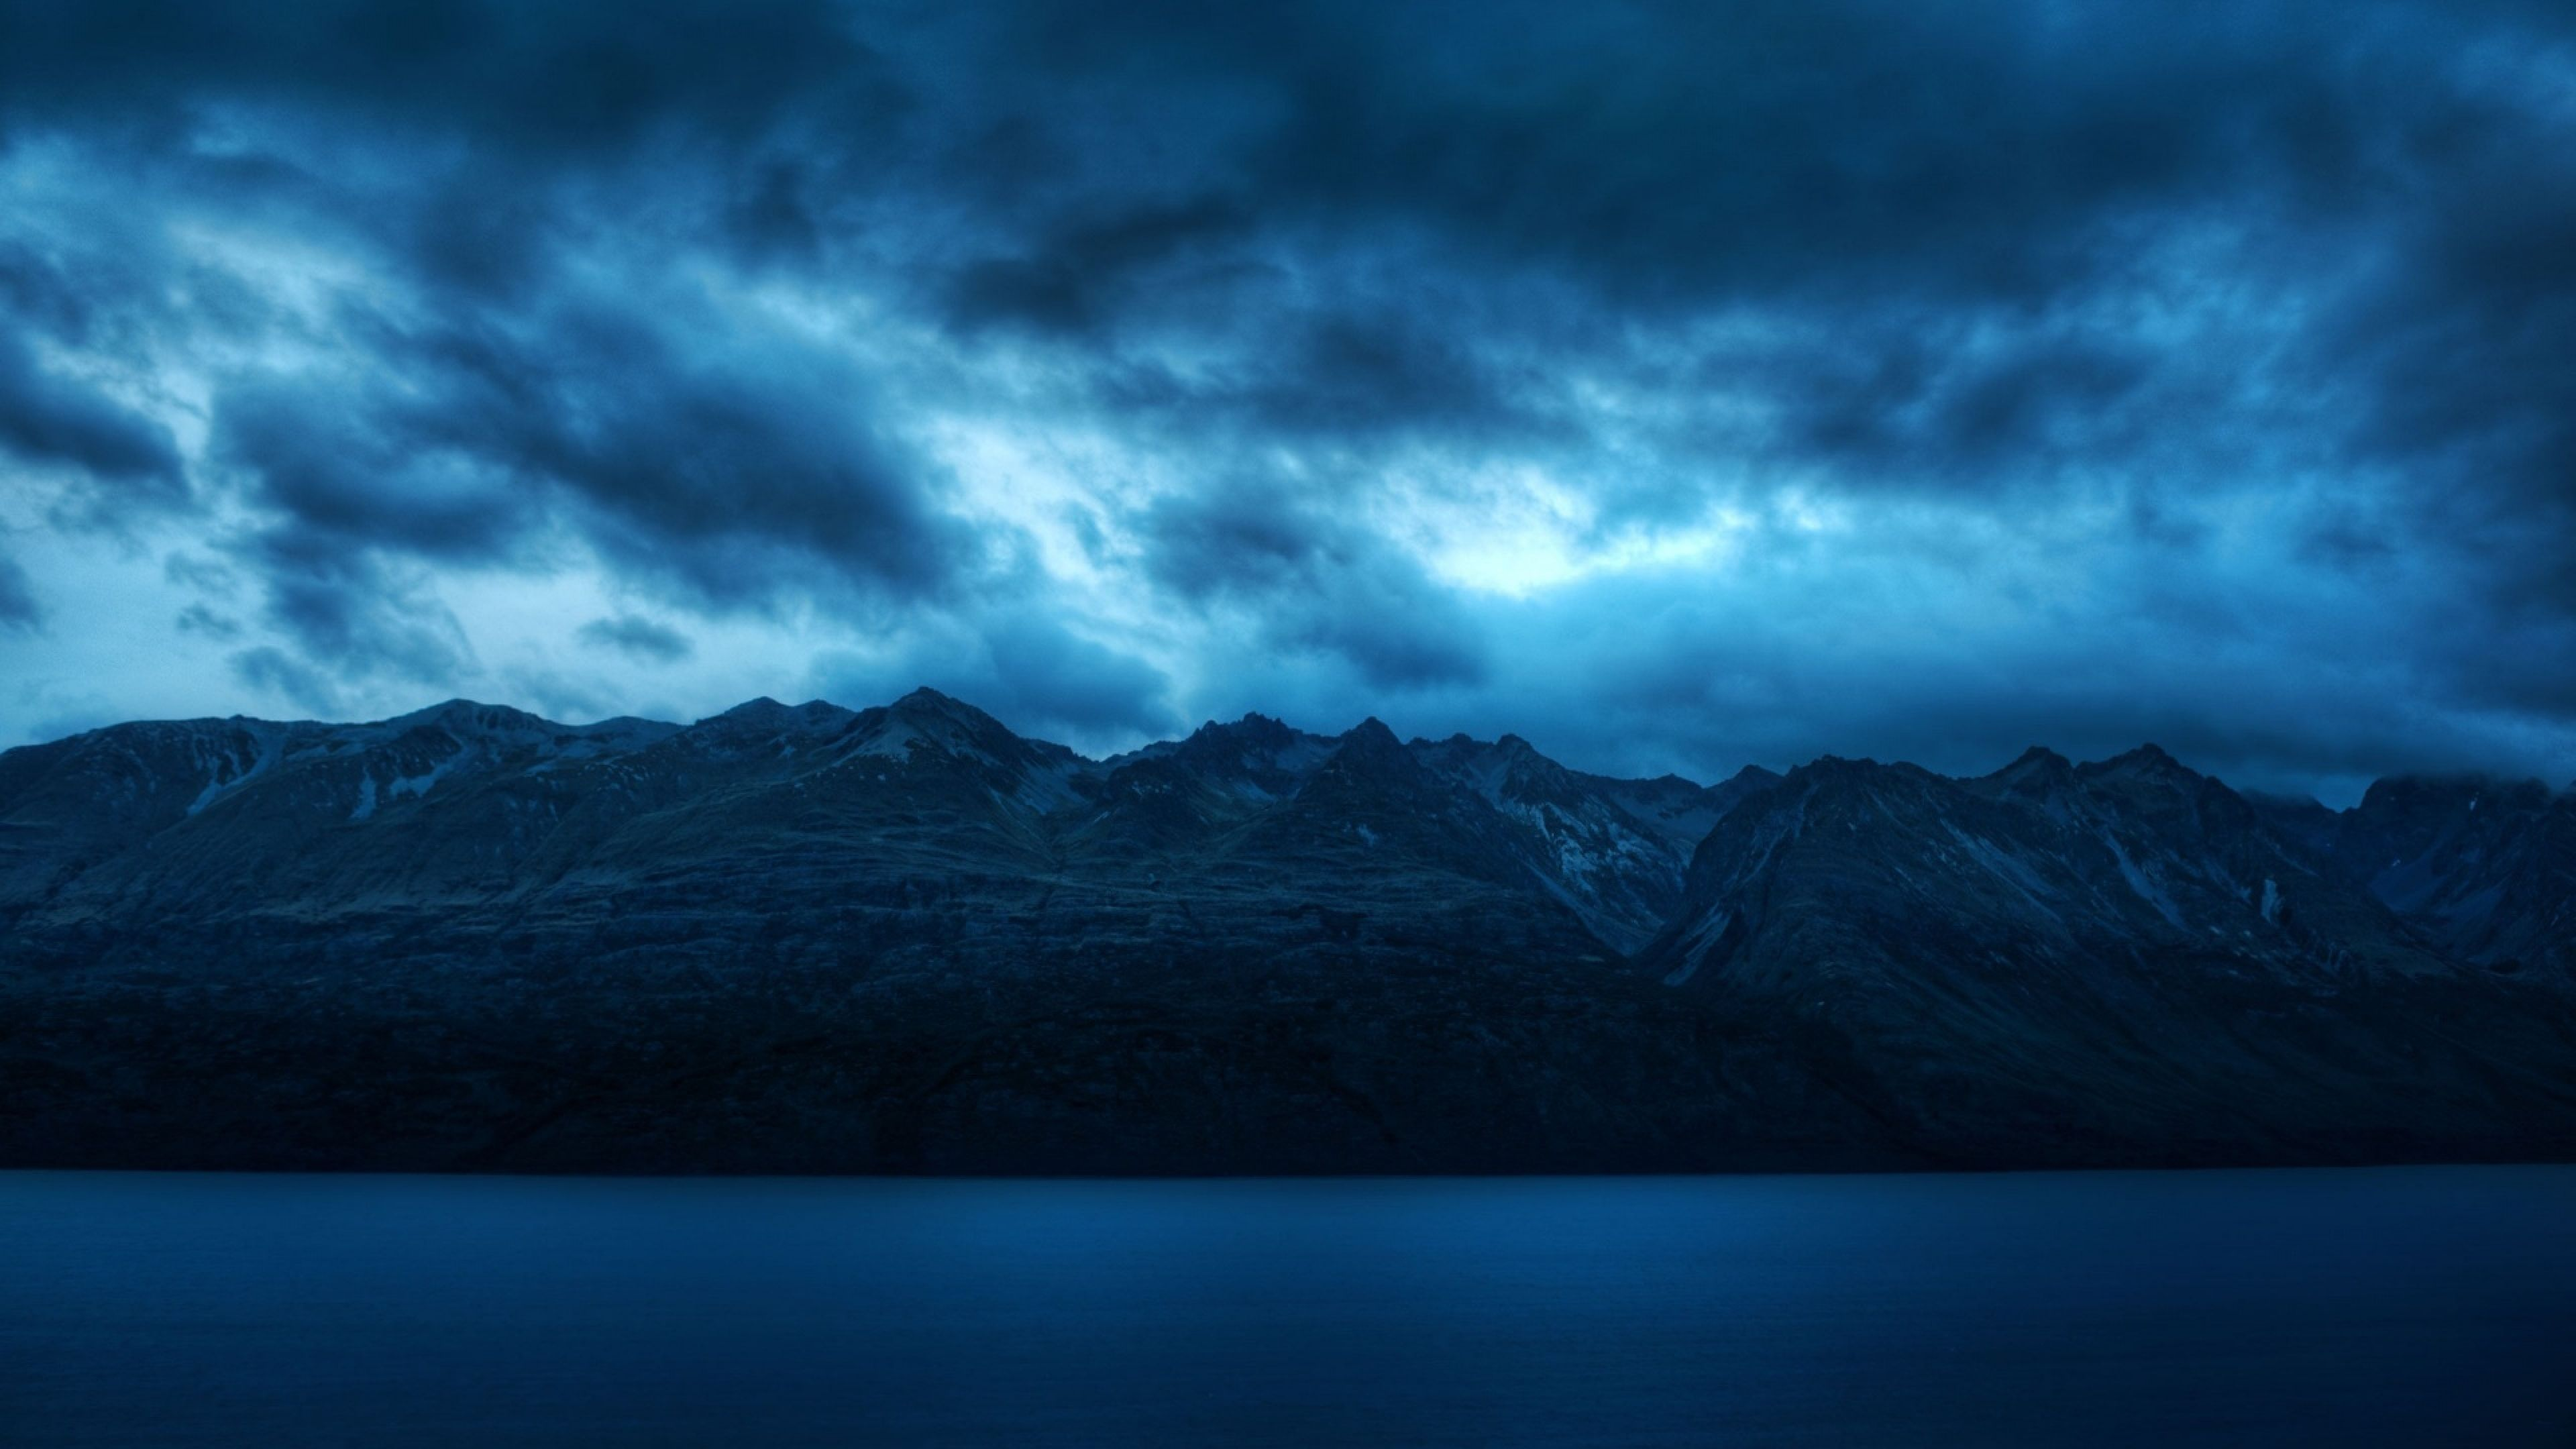 Dark Blue Mountains 3840 X 2160 Hd Nature Wallpapers Nature Wallpaper Mountain Wallpaper